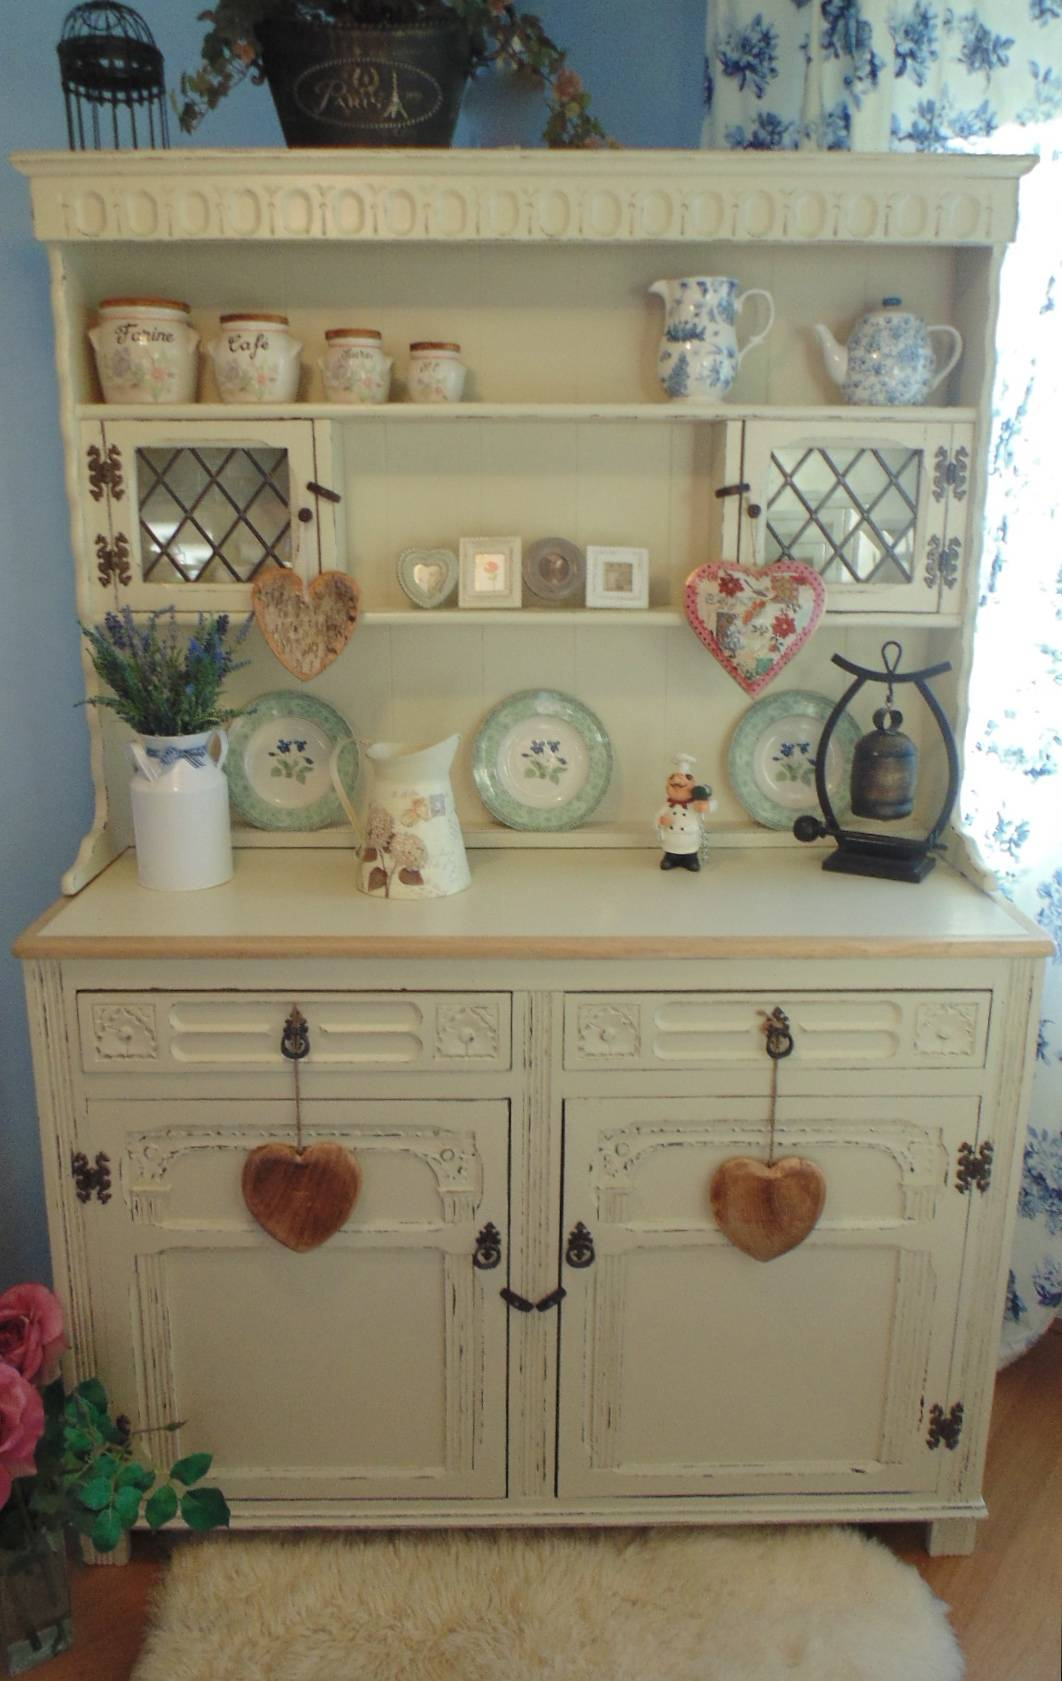 2 Door Old Charm Dresser with Painted Work Surface in Off White